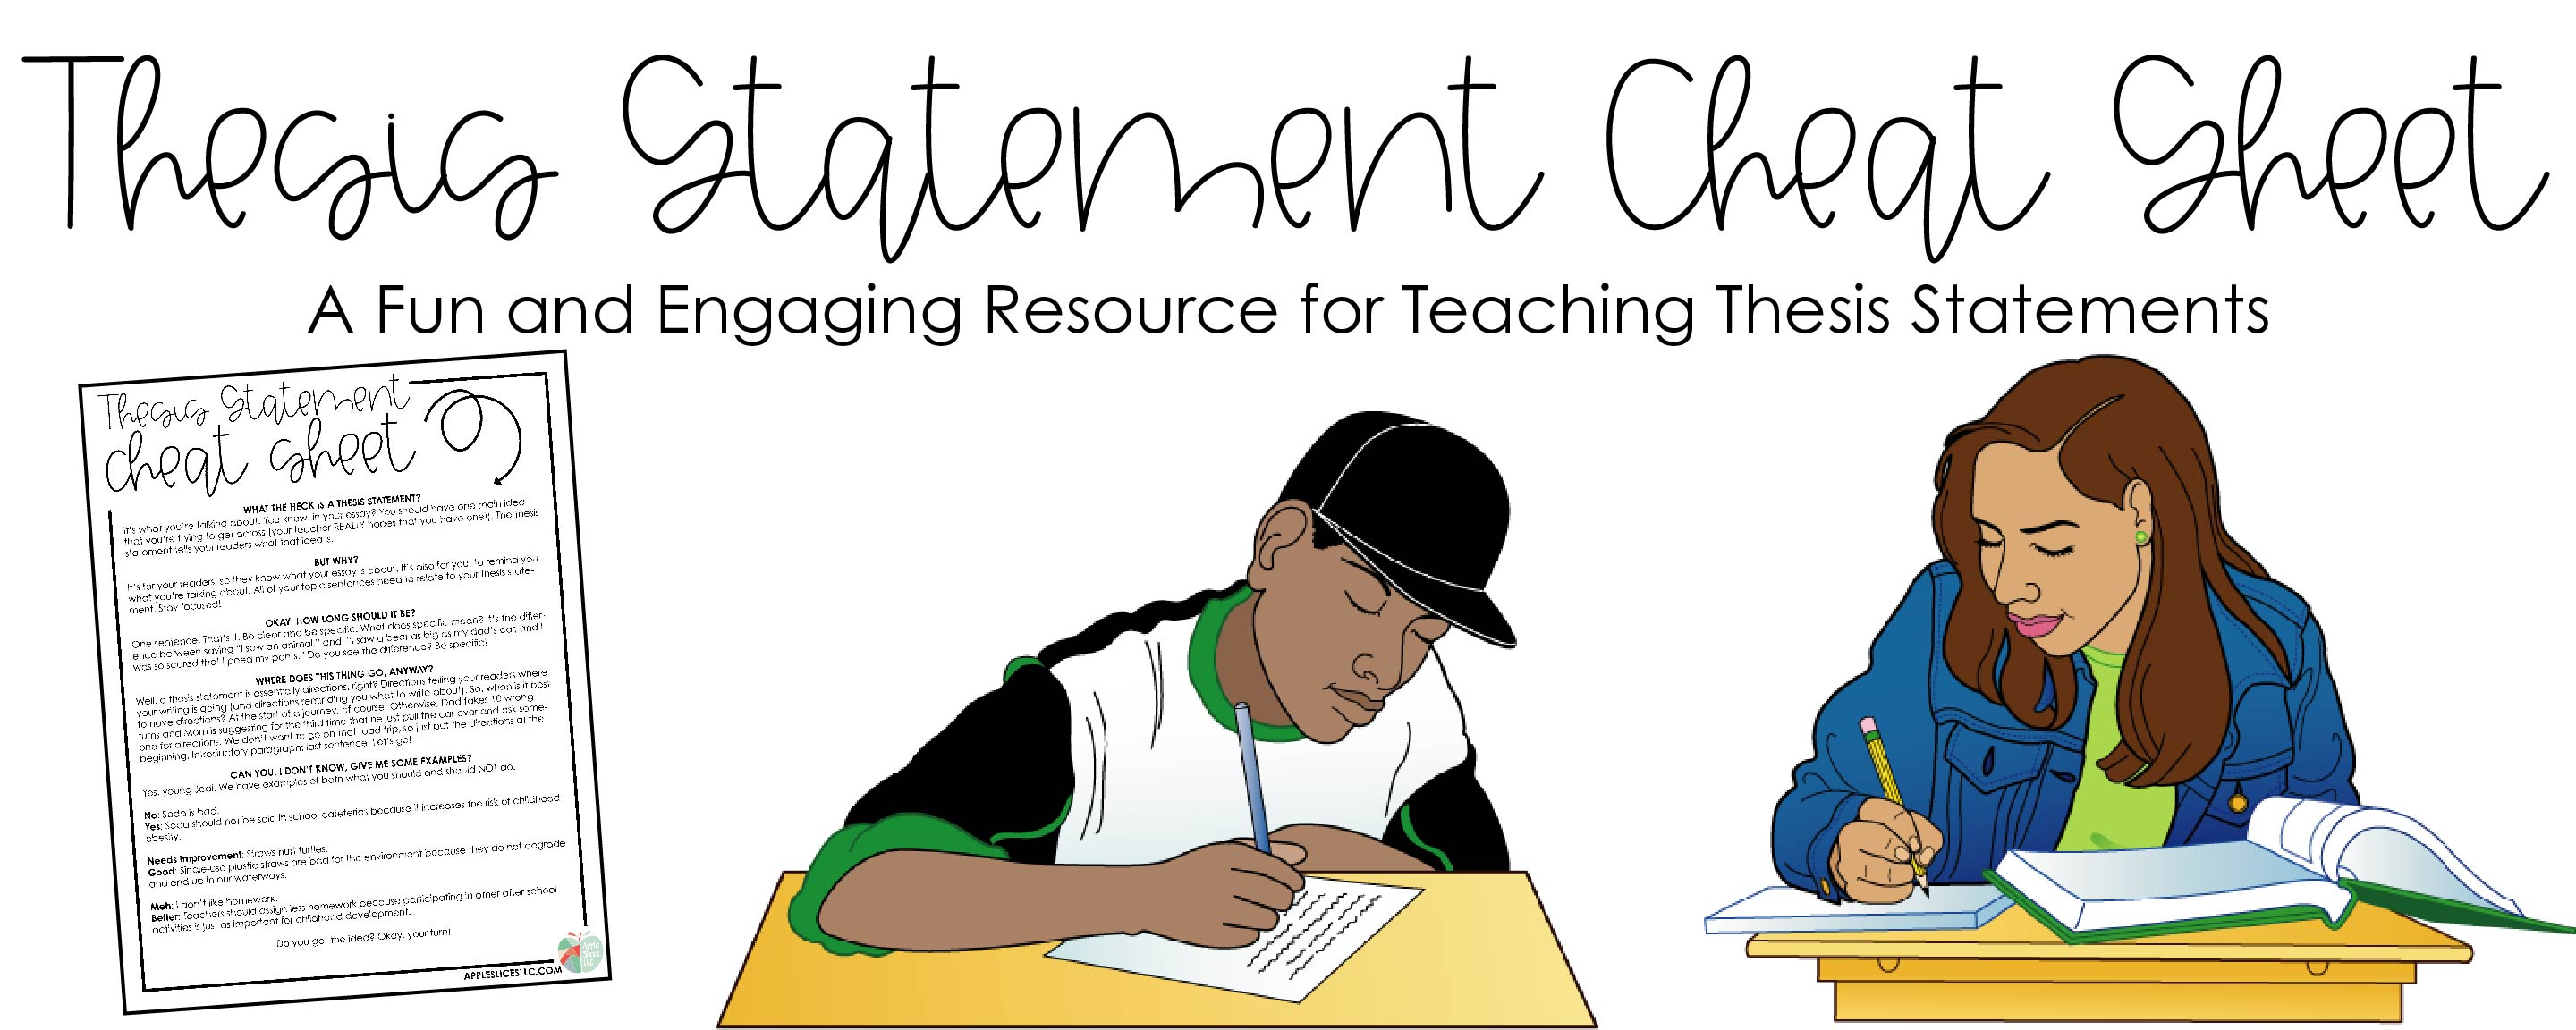 Thesis Statement Cheat Sheet Freebie | A Fun and Engaging Resource for How to Teach Thesis Statements